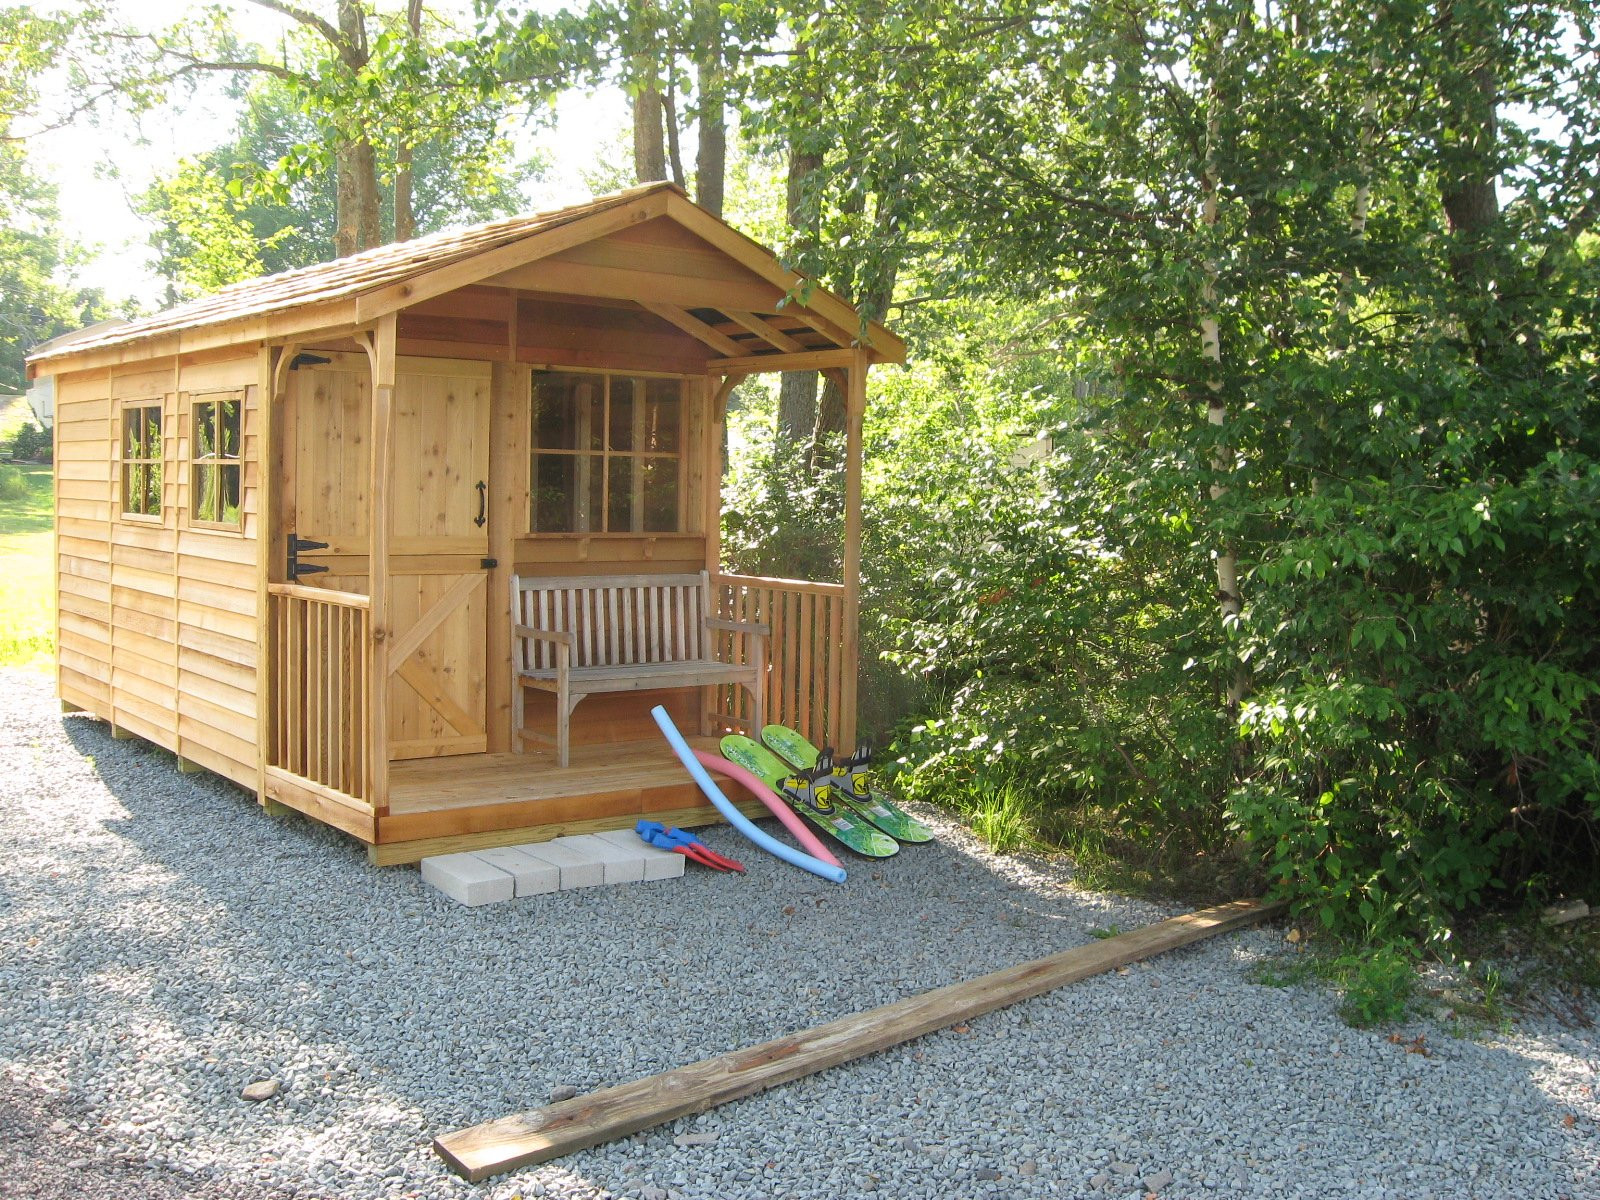 DIY Kids Clubhouse  Clubhouse for Sale Wooden Kids Clubhouse Kits & DIY Plans